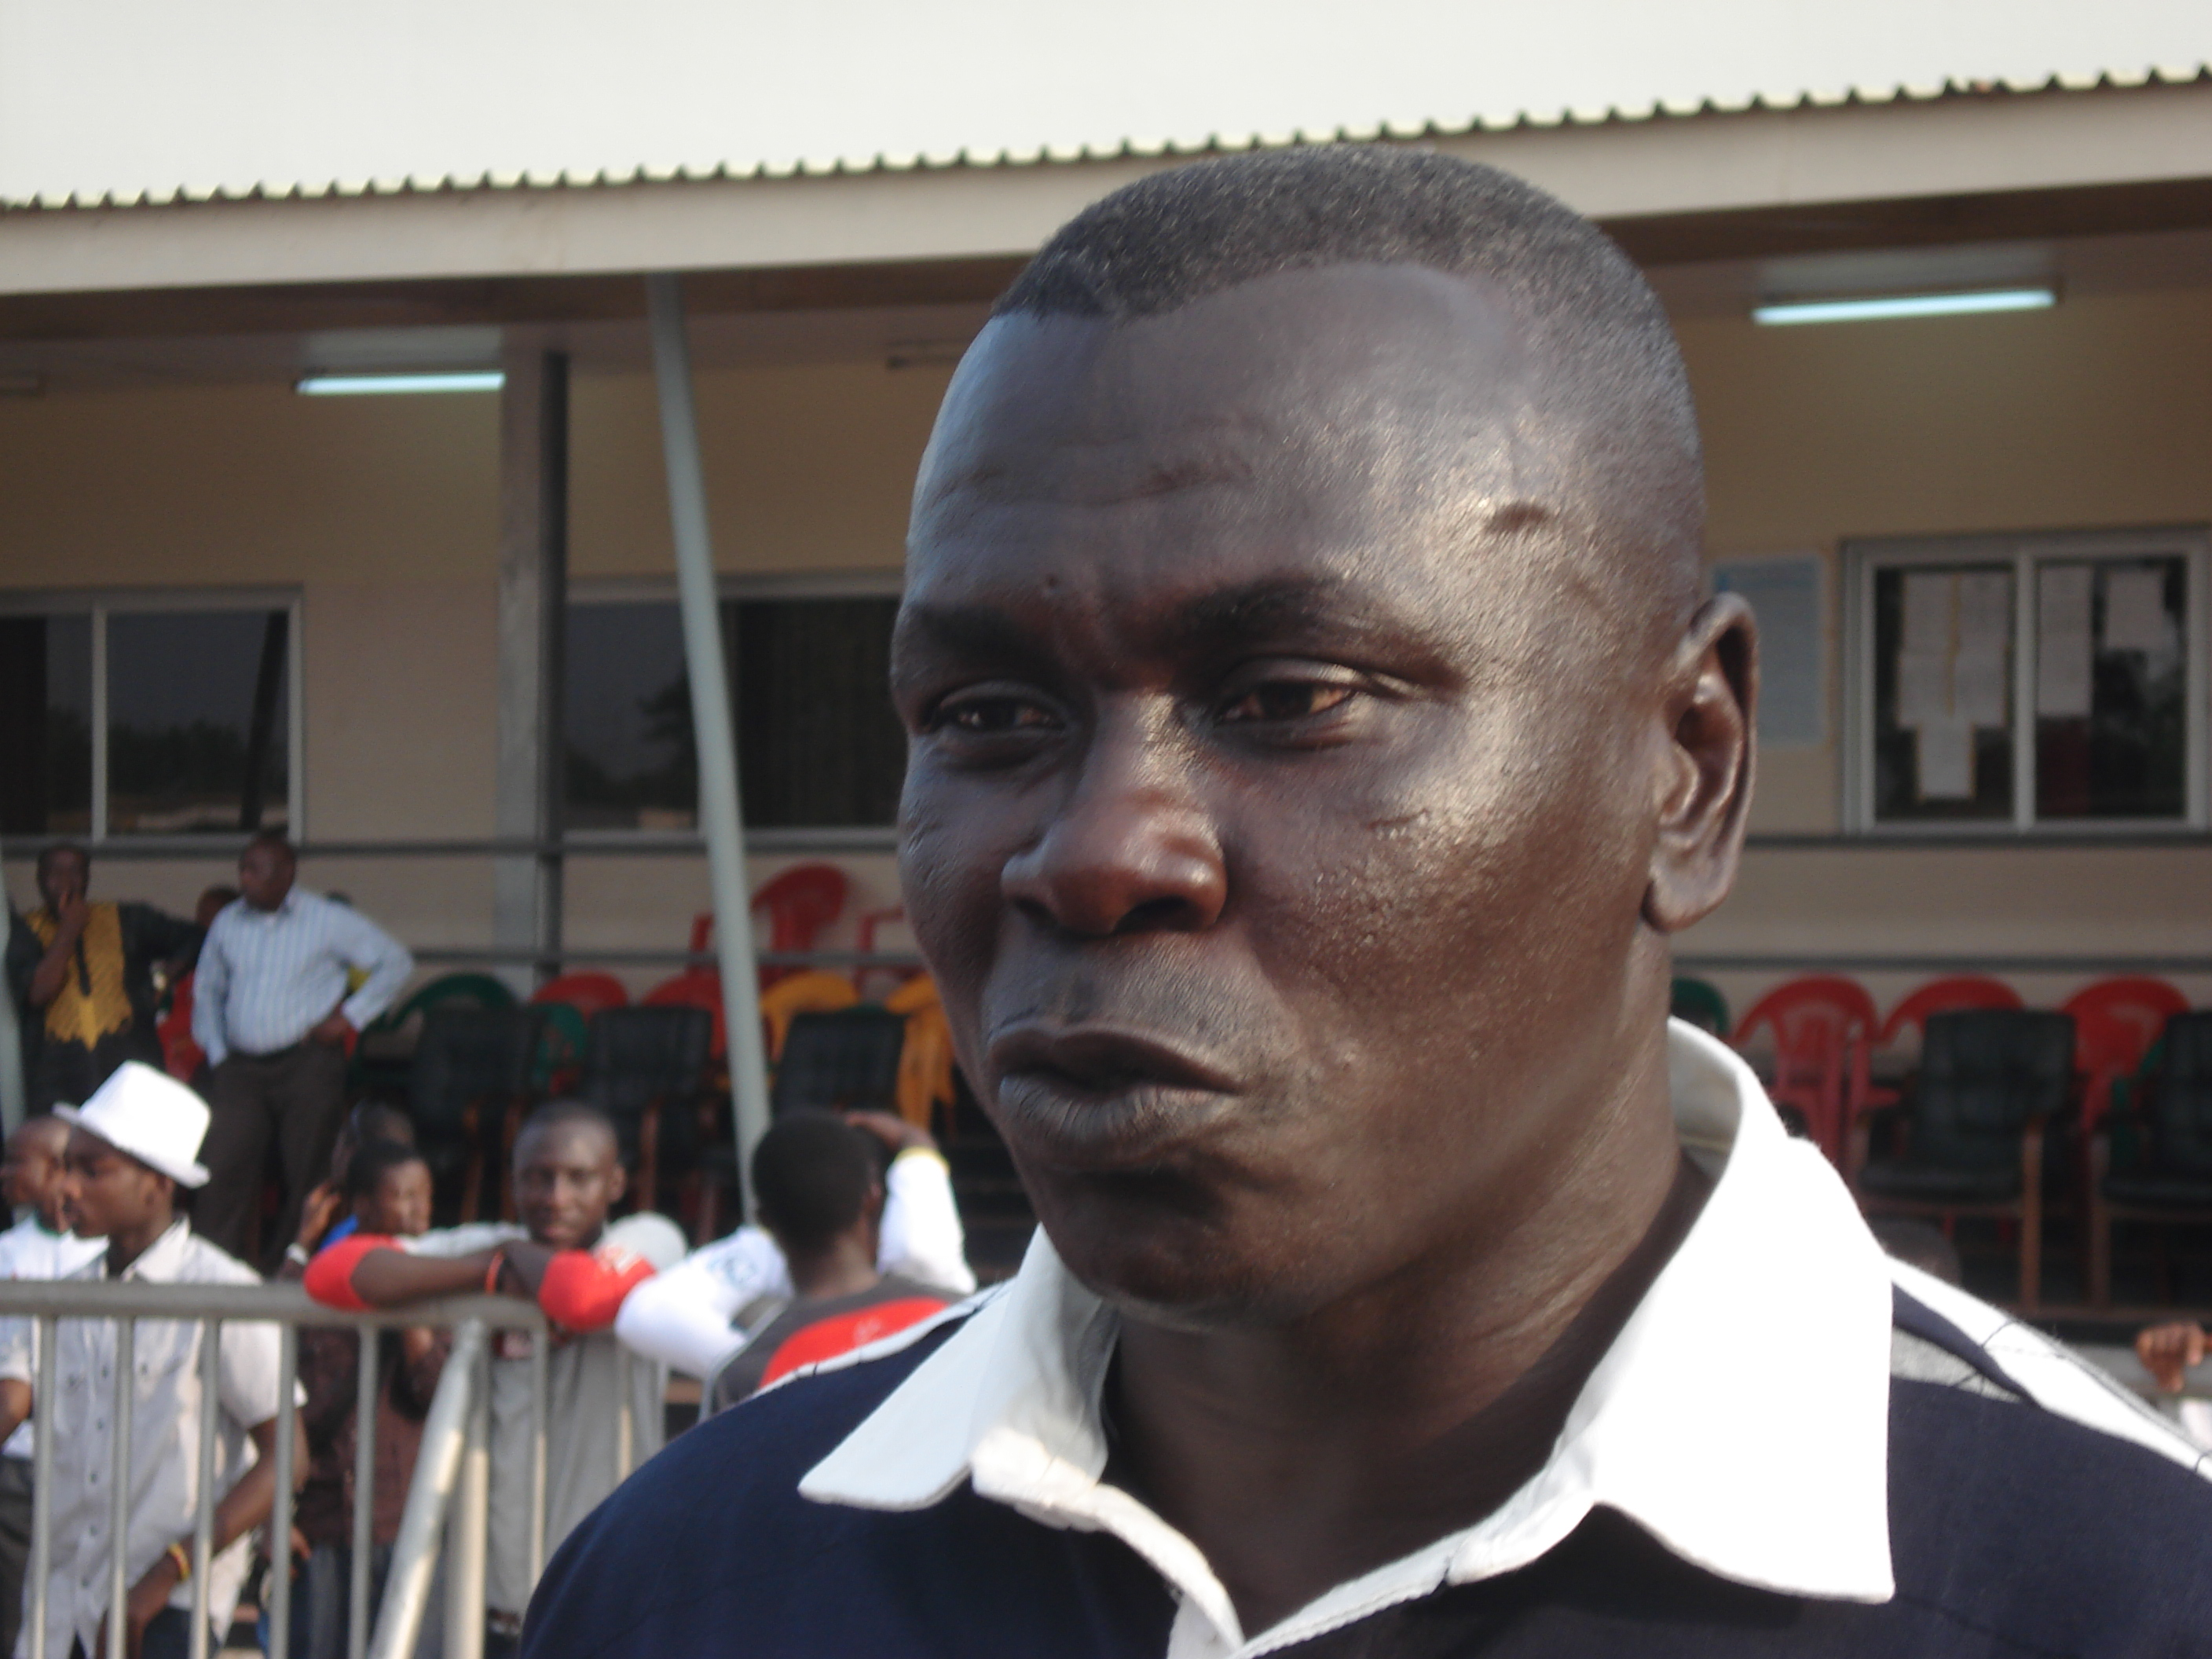 Coach Frimpong Manso tips Qatar to give Ghana a good opposition